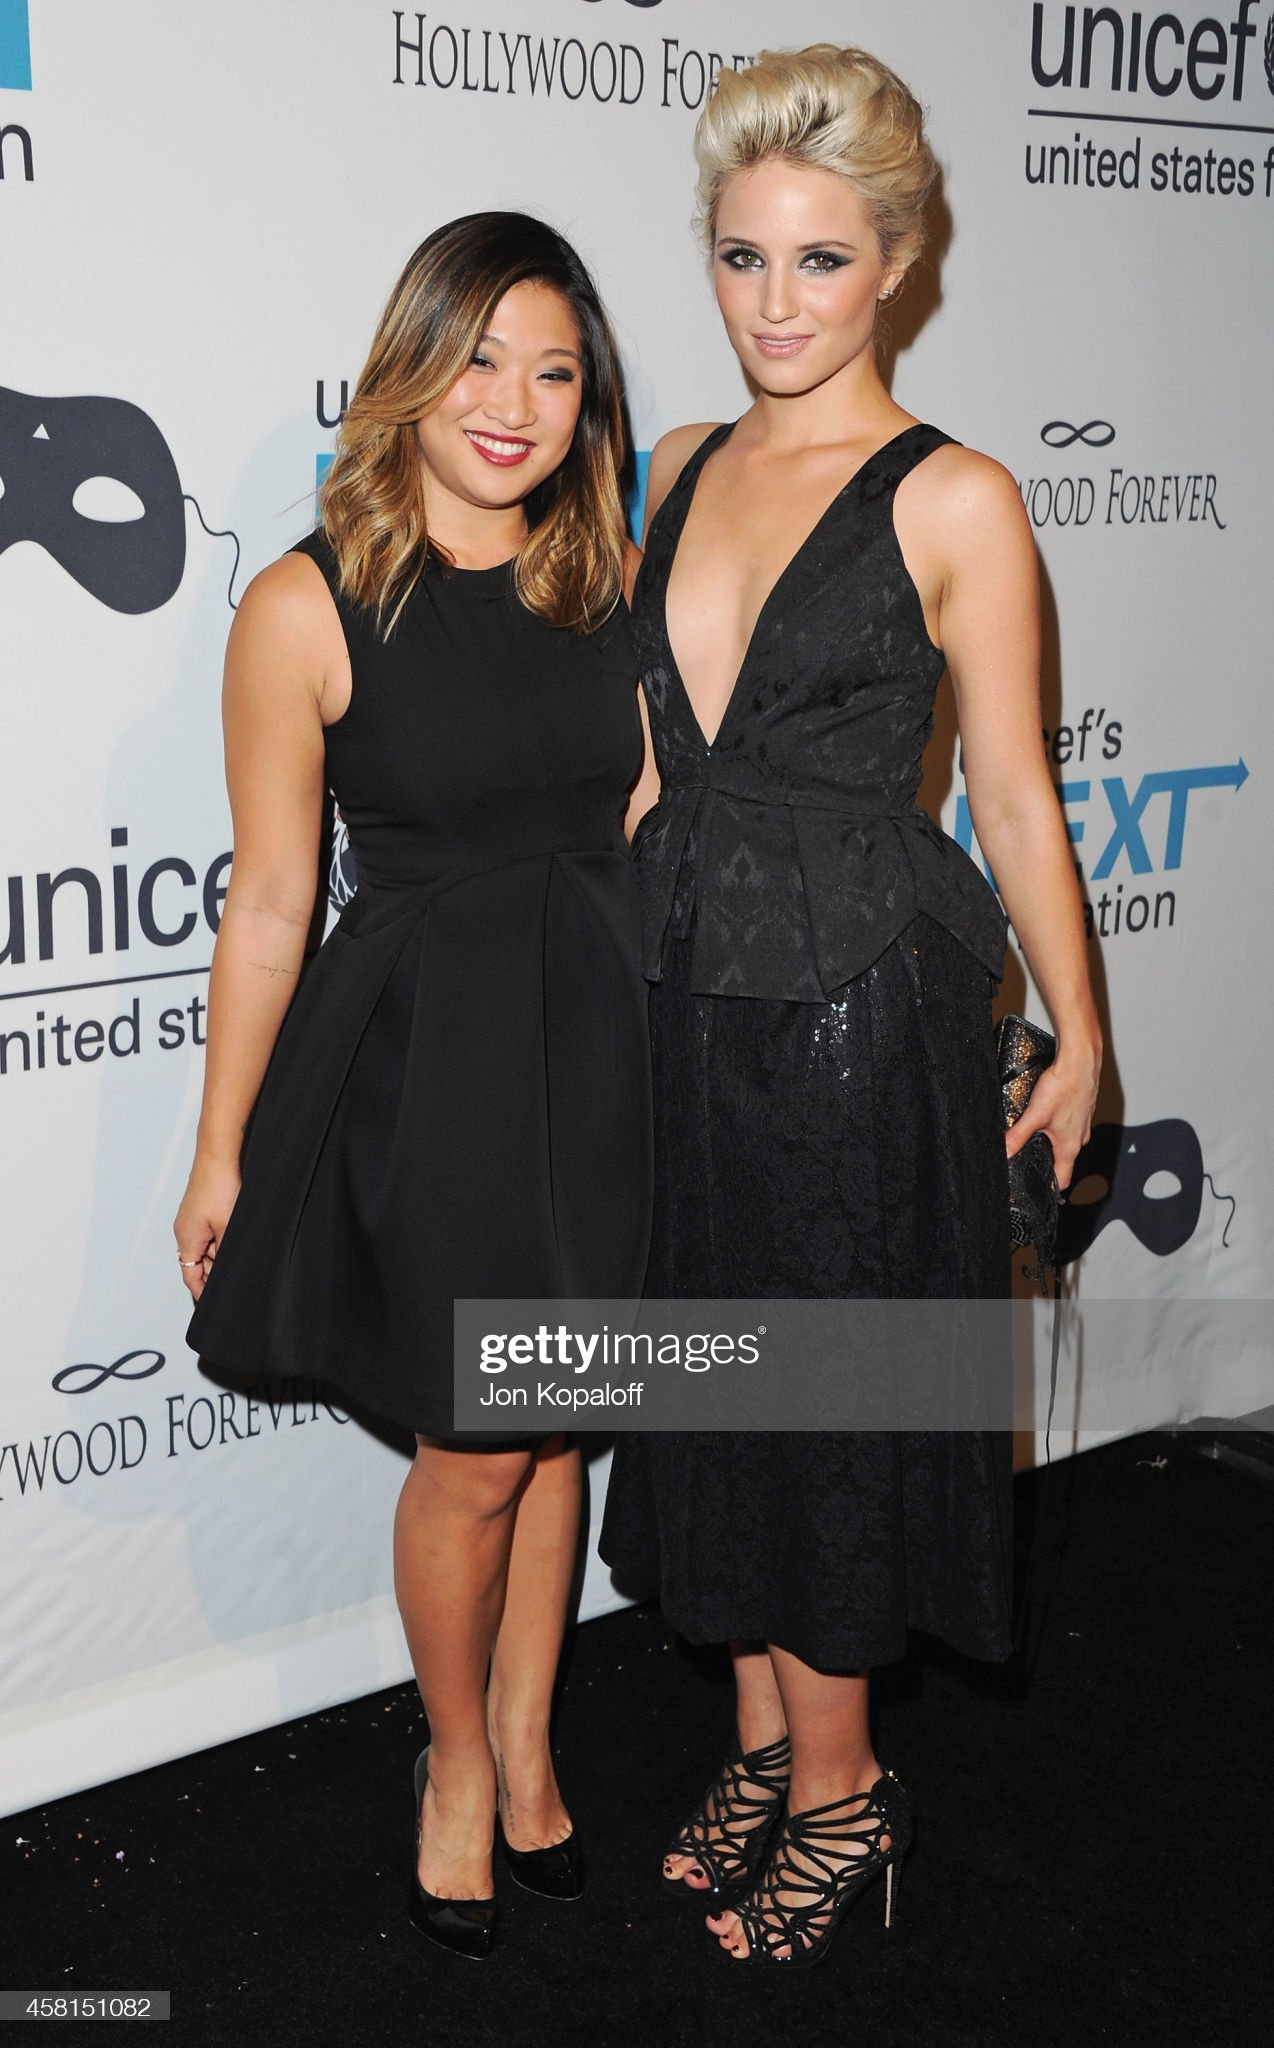 ¿Cuánto mide Jenna Ushkowitz? - Real height Actress-jenna-ushkowitz-and-actress-dianna-agron-arrive-at-the-next-picture-id458151082?s=2048x2048